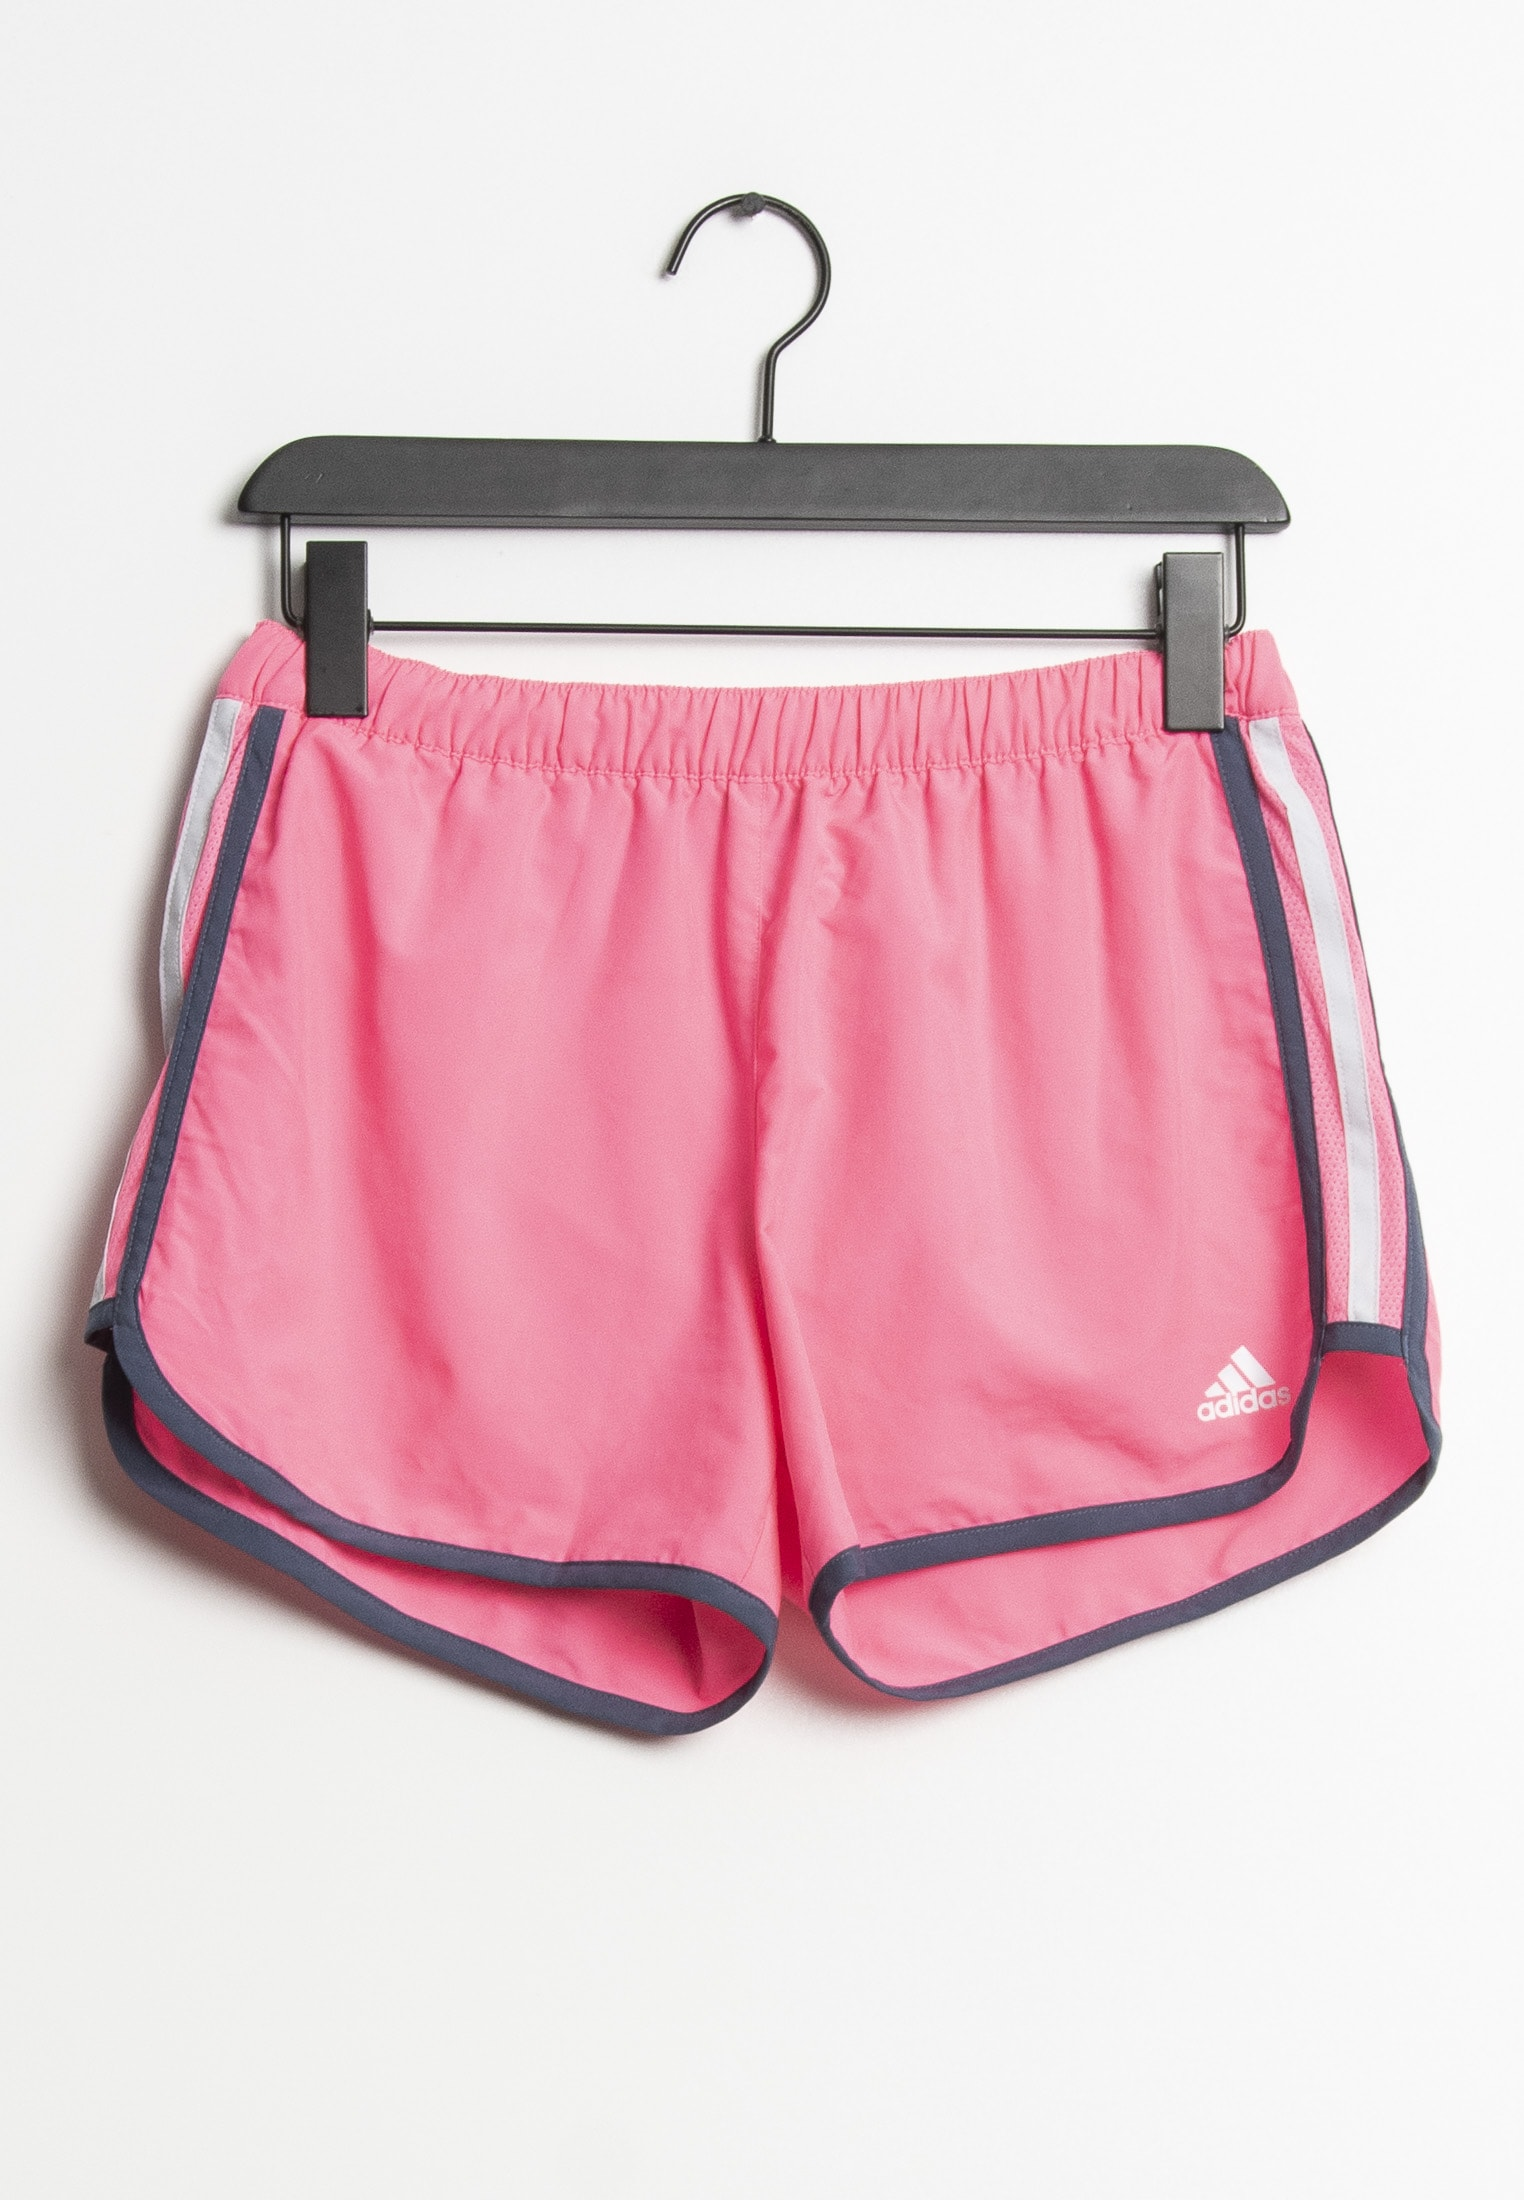 adidas Performance shorts, pink, 38